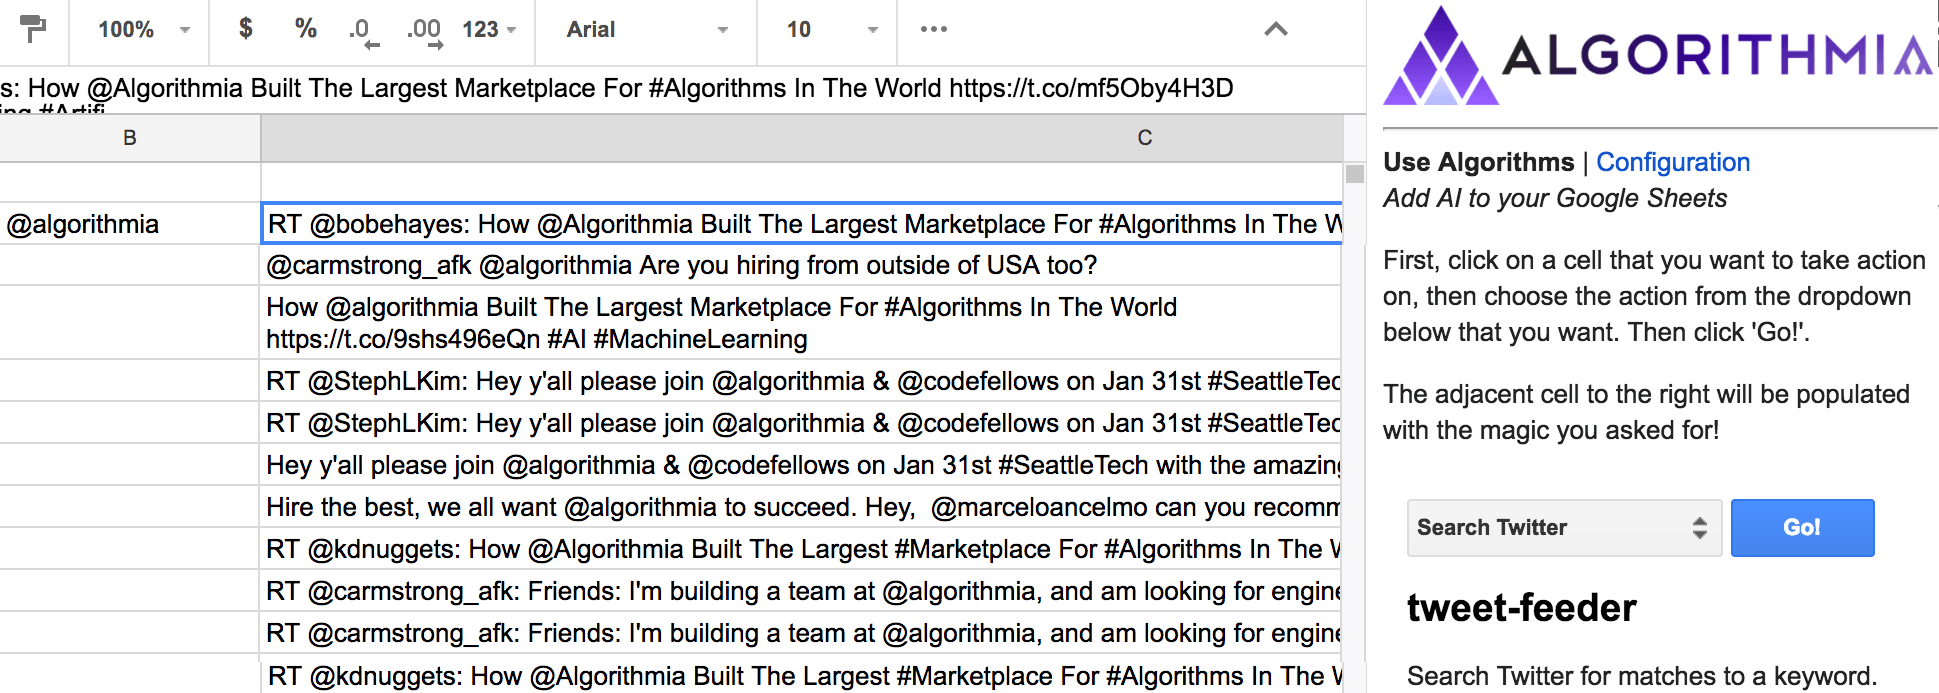 Use Algorithmia within Google Sheets